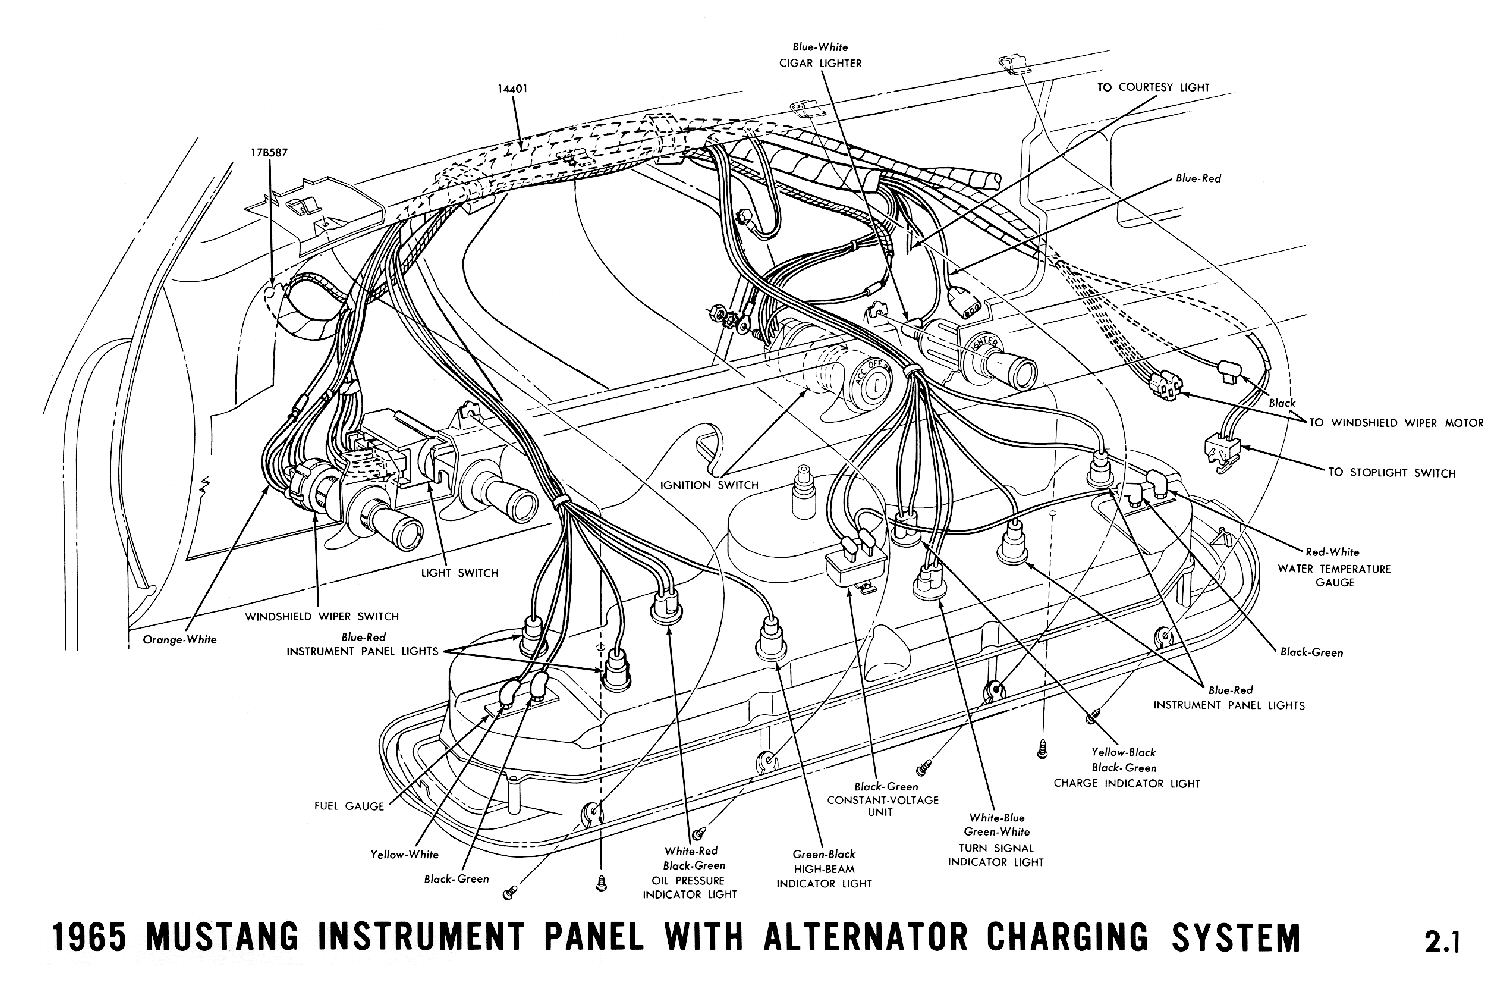 1965a 1965 mustang wiring diagrams average joe restoration 1966 fairlane wiring diagram at aneh.co